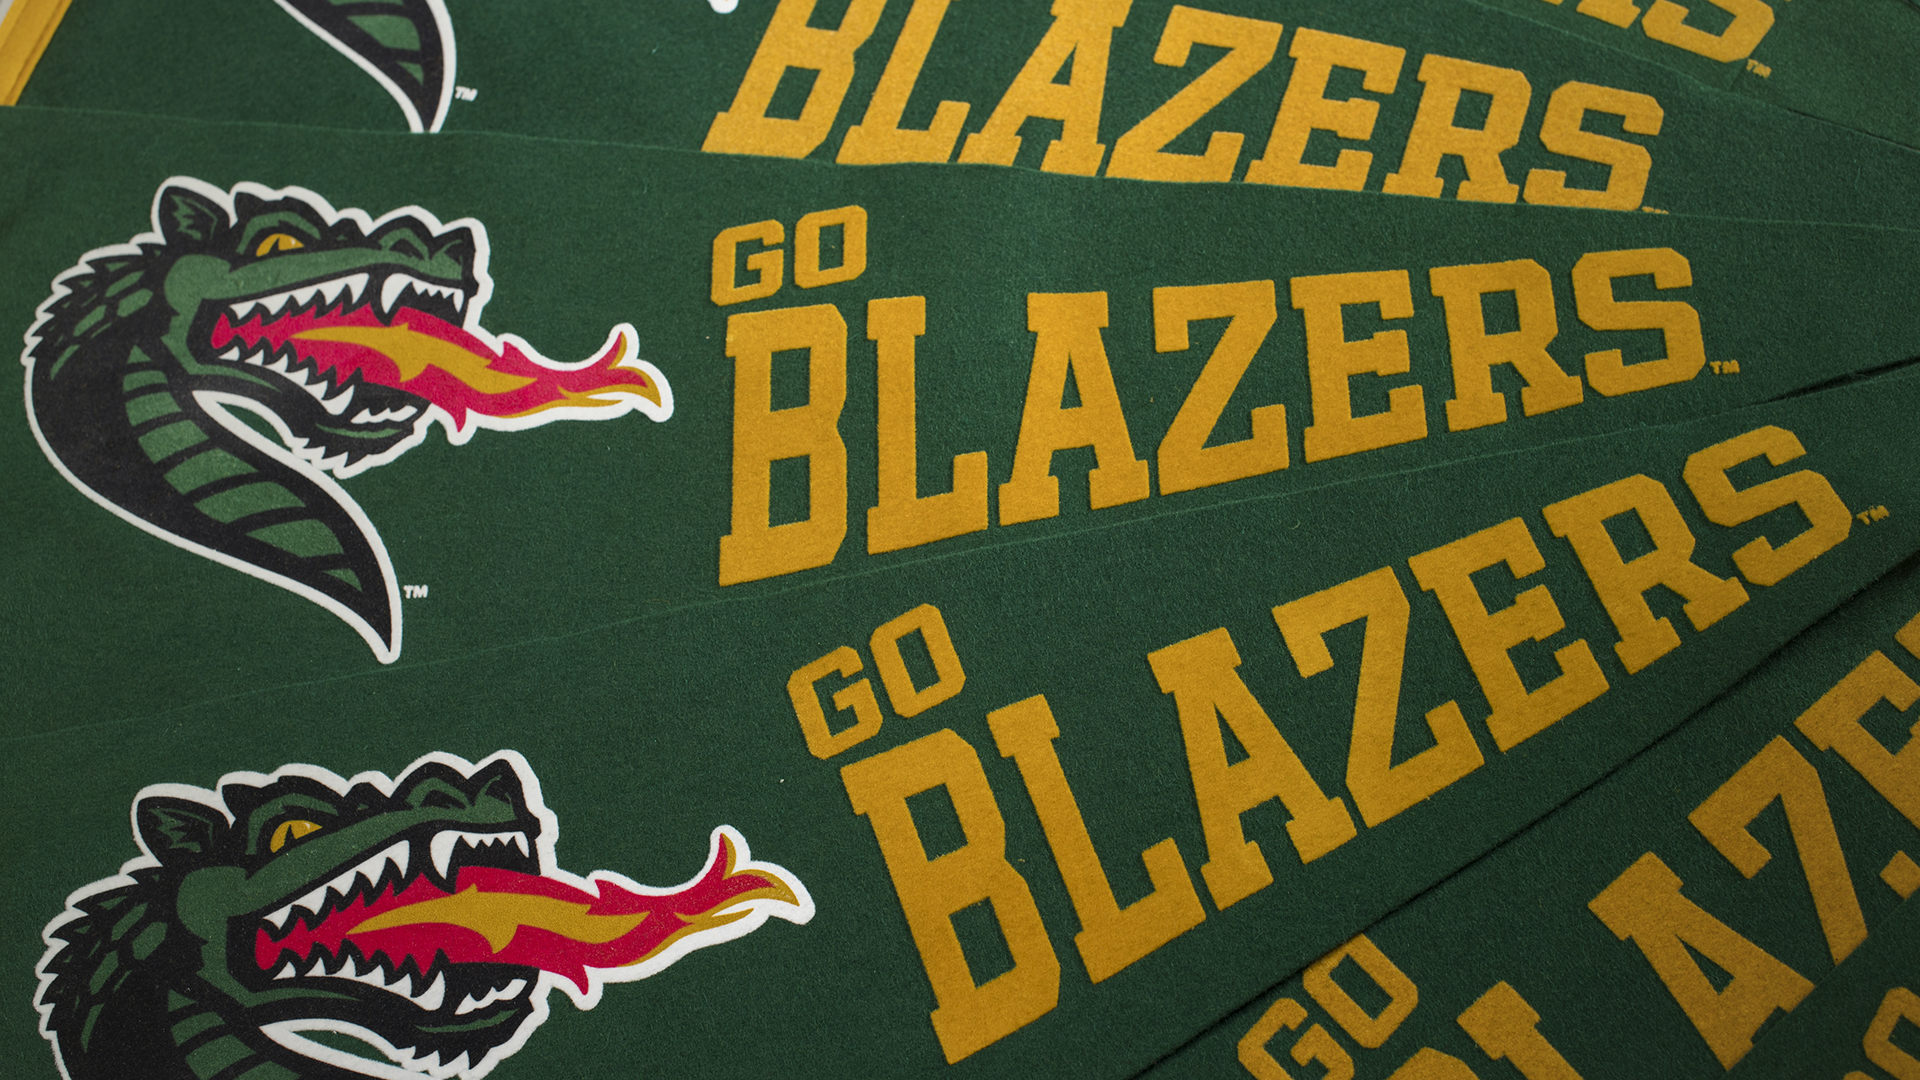 Blaze pennants with 'Go Blazers' in gold text.